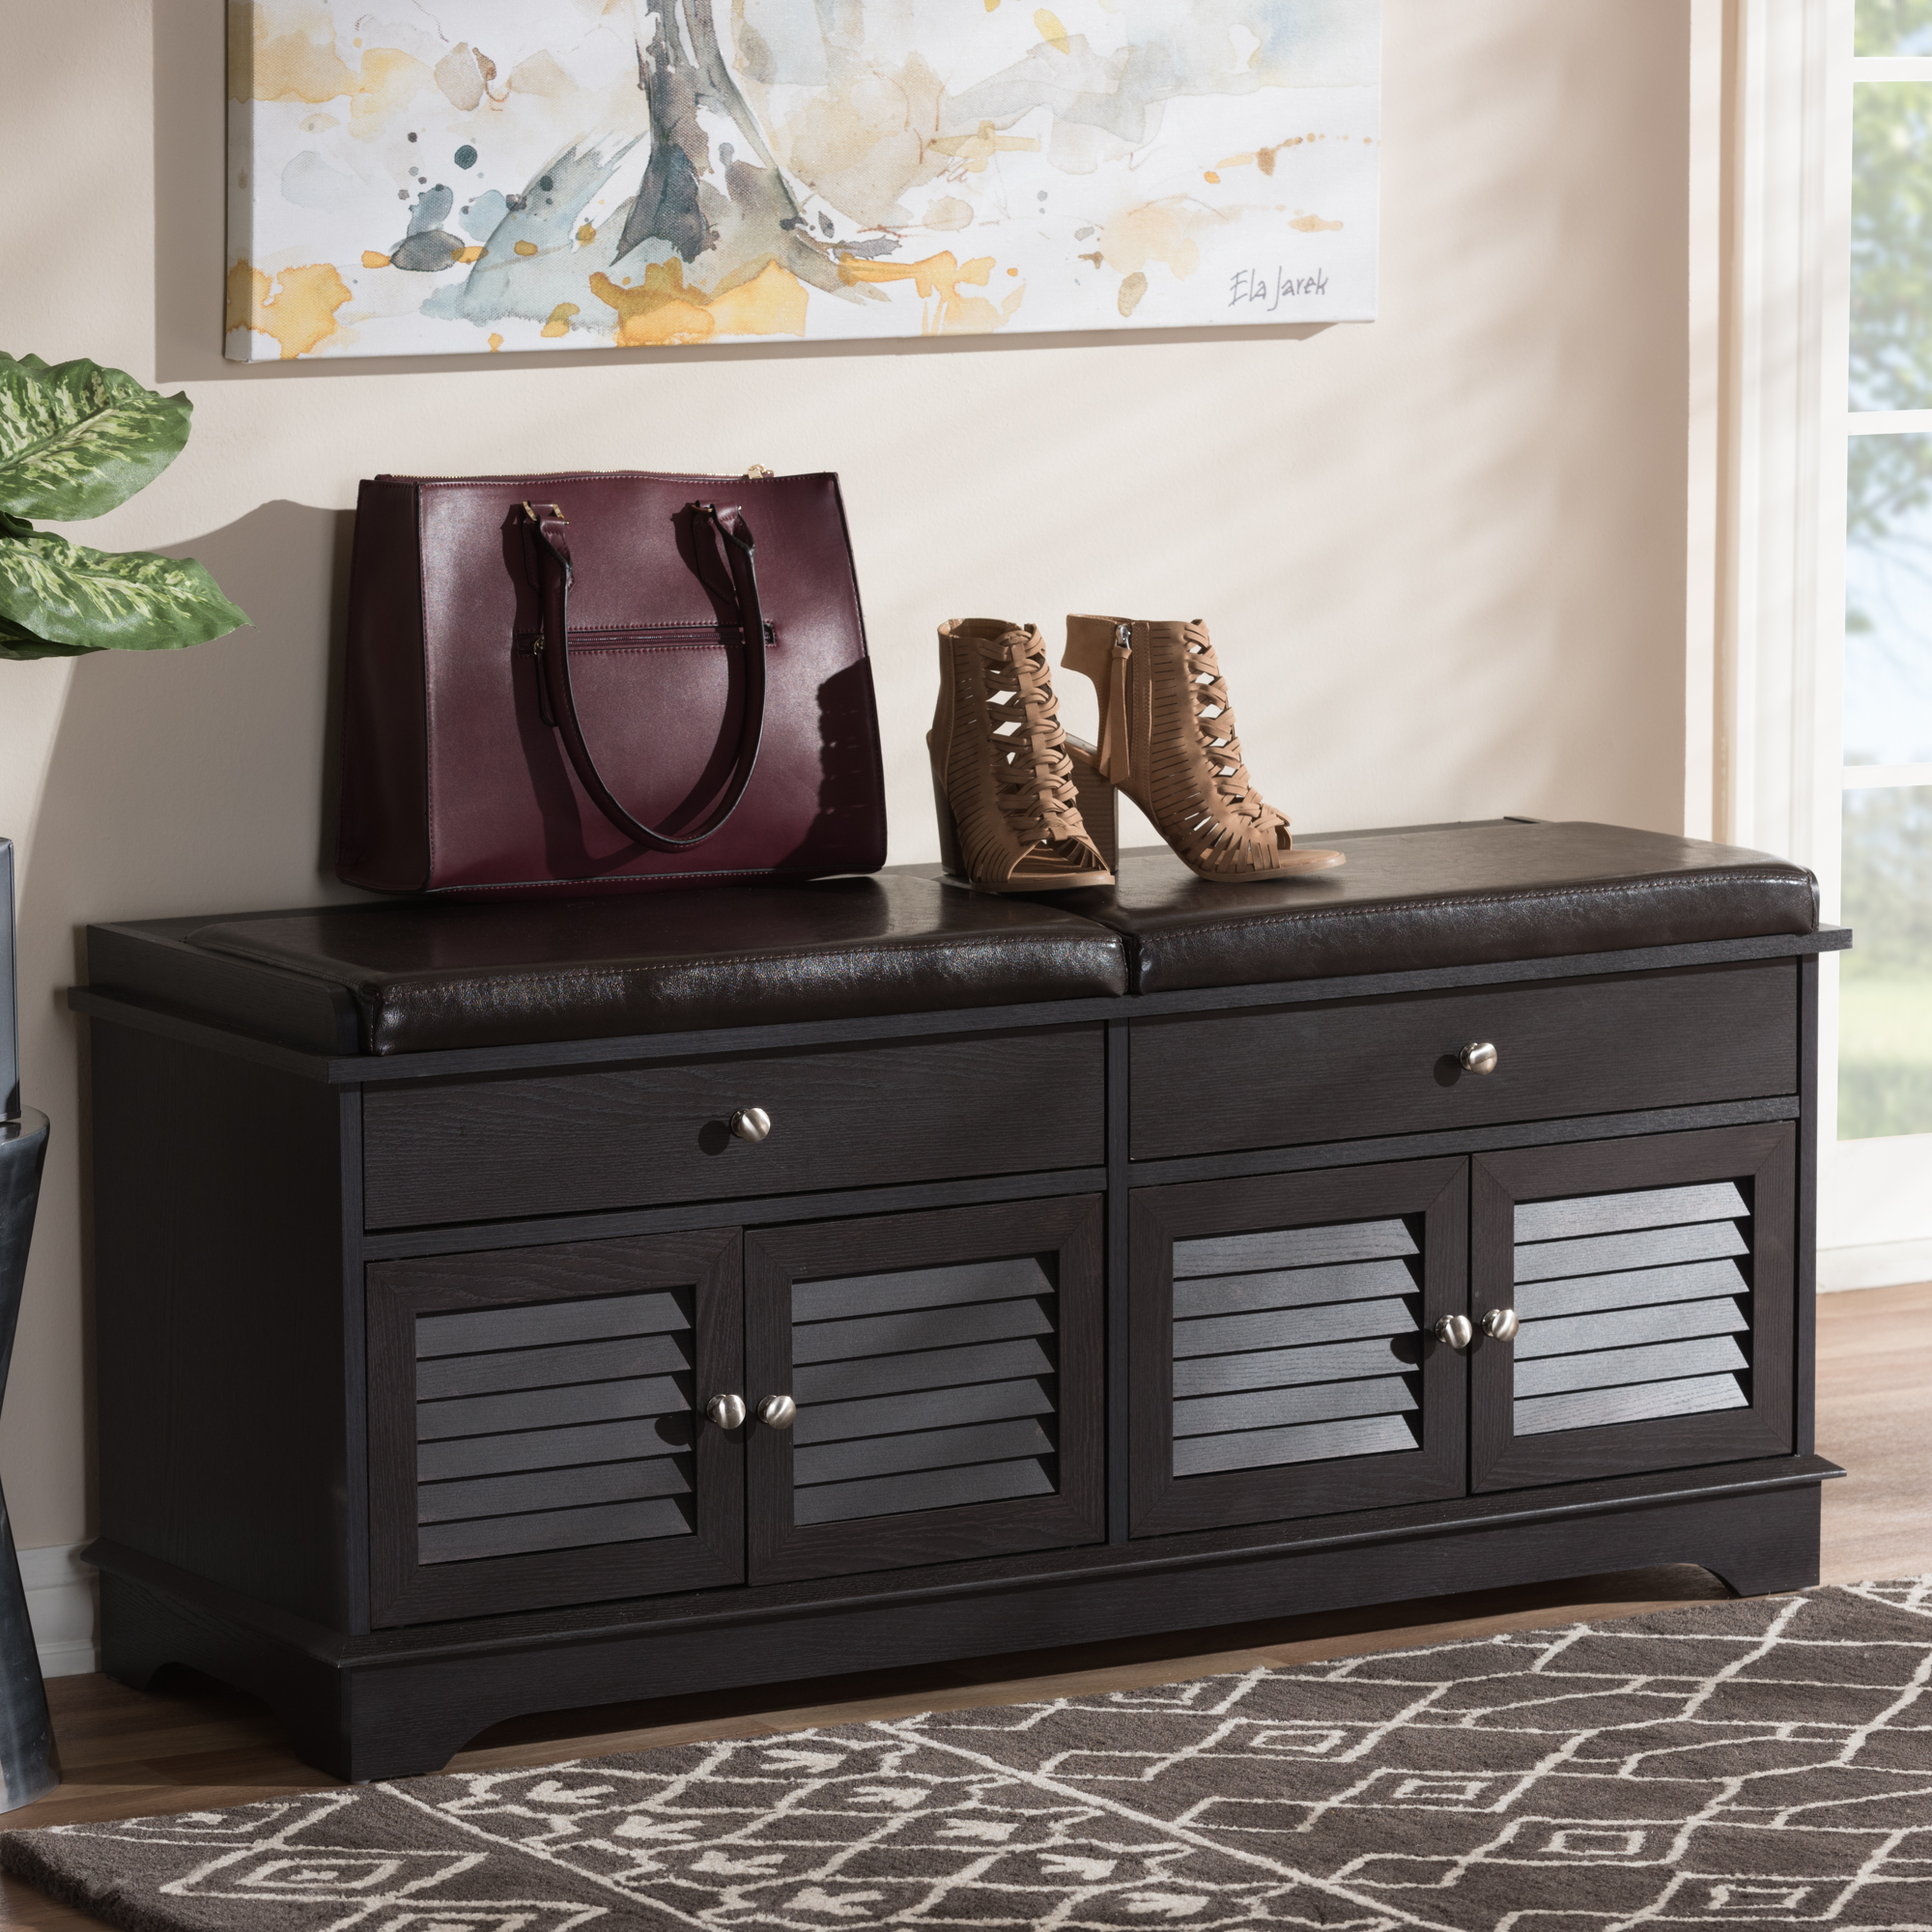 Baxton Studio Leo Modern and Contemporary Dark Brown Wood 2-Drawer Shoe Storage Bench